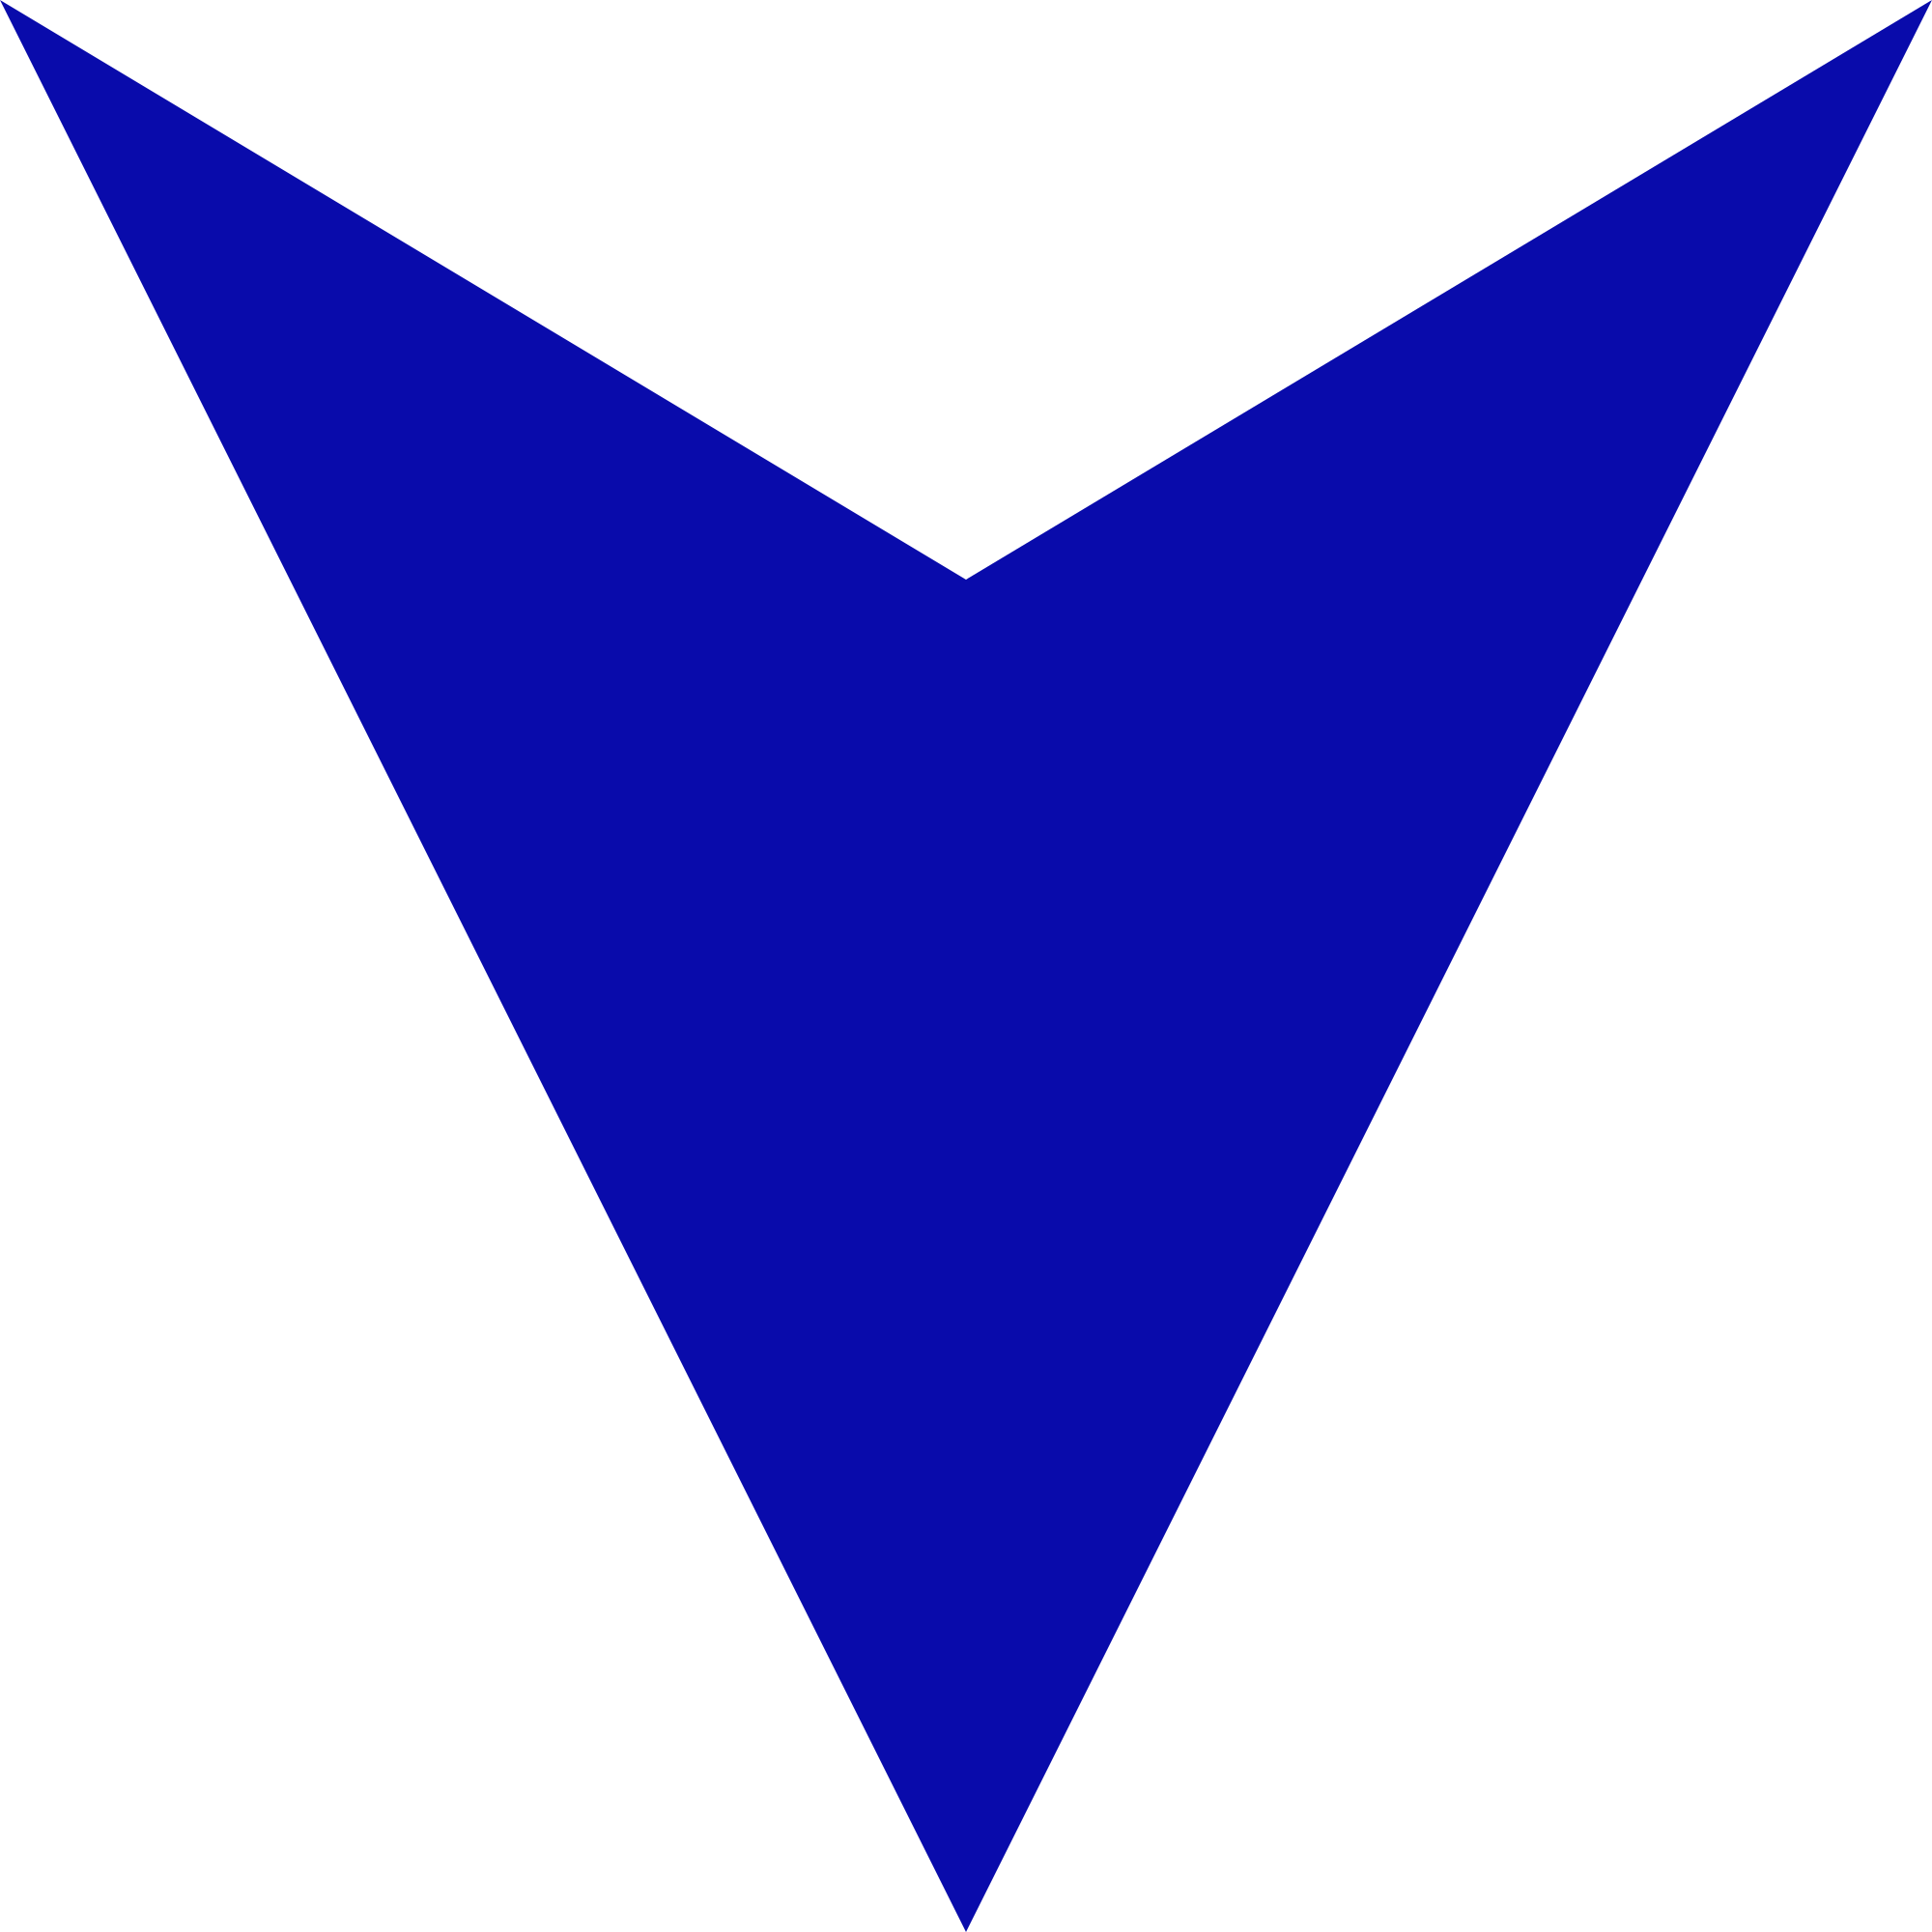 Blue arrow pointing down.